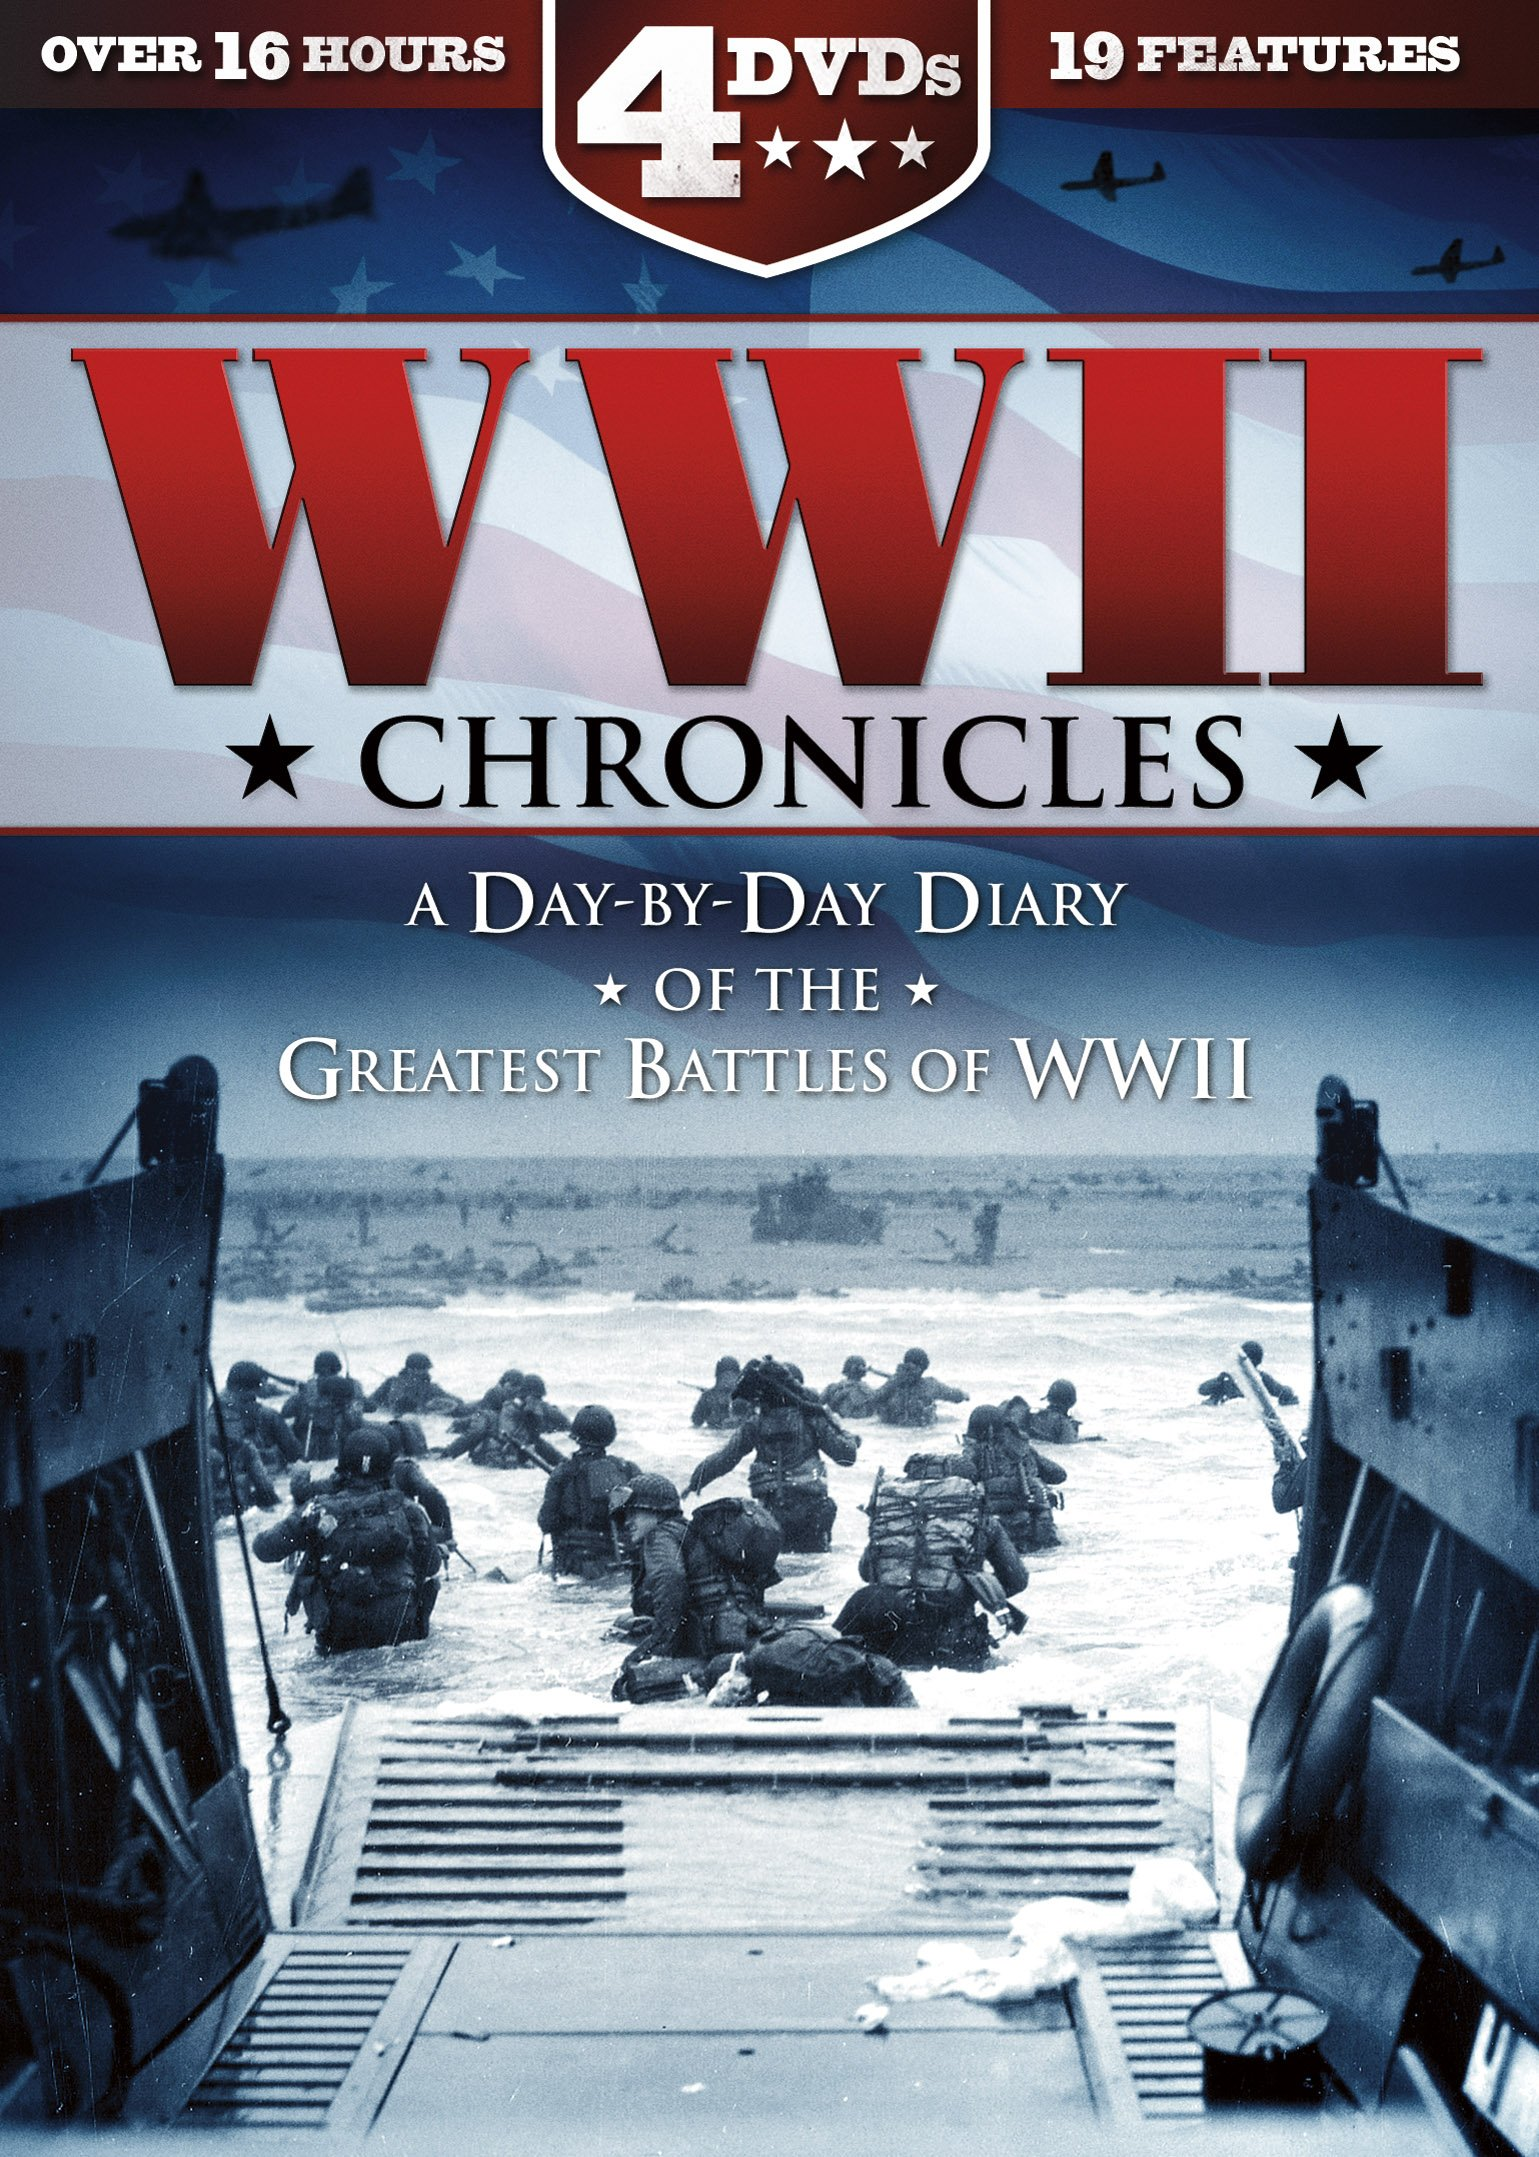 DVD : Wwii Chronicles: A Day-by-day Diary (Full Frame, Boxed Set, Slim Pack, Download Insert, 4PC)